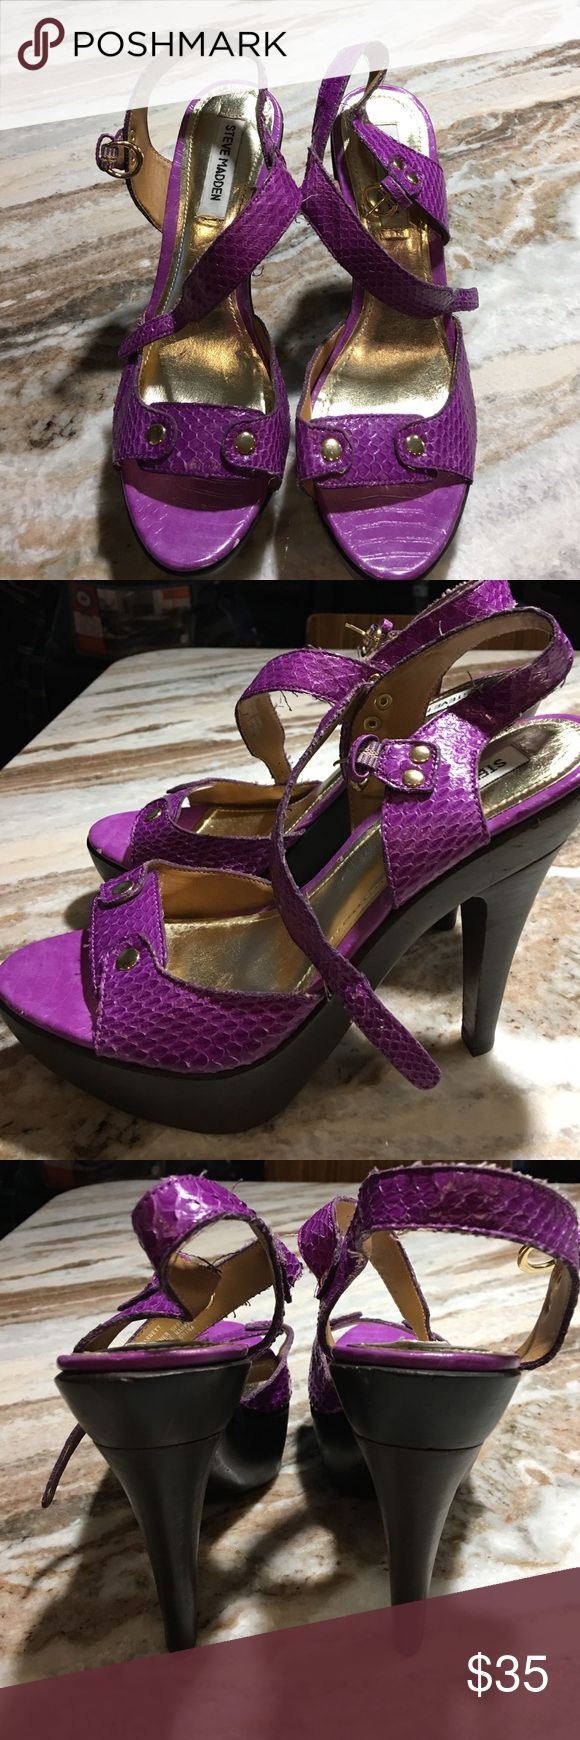 """Steve Madden heels size 8 I have for sale a brand new pair of Steve Madden shoes- size 8. They are new, never used but have been damaged from being in the closet. The front of the shoes have small scuffs to the purple part- see Picts. Also, some areas have thread """"shedding off"""" - needs to be trimmed. Steve Madden Shoes Heels"""